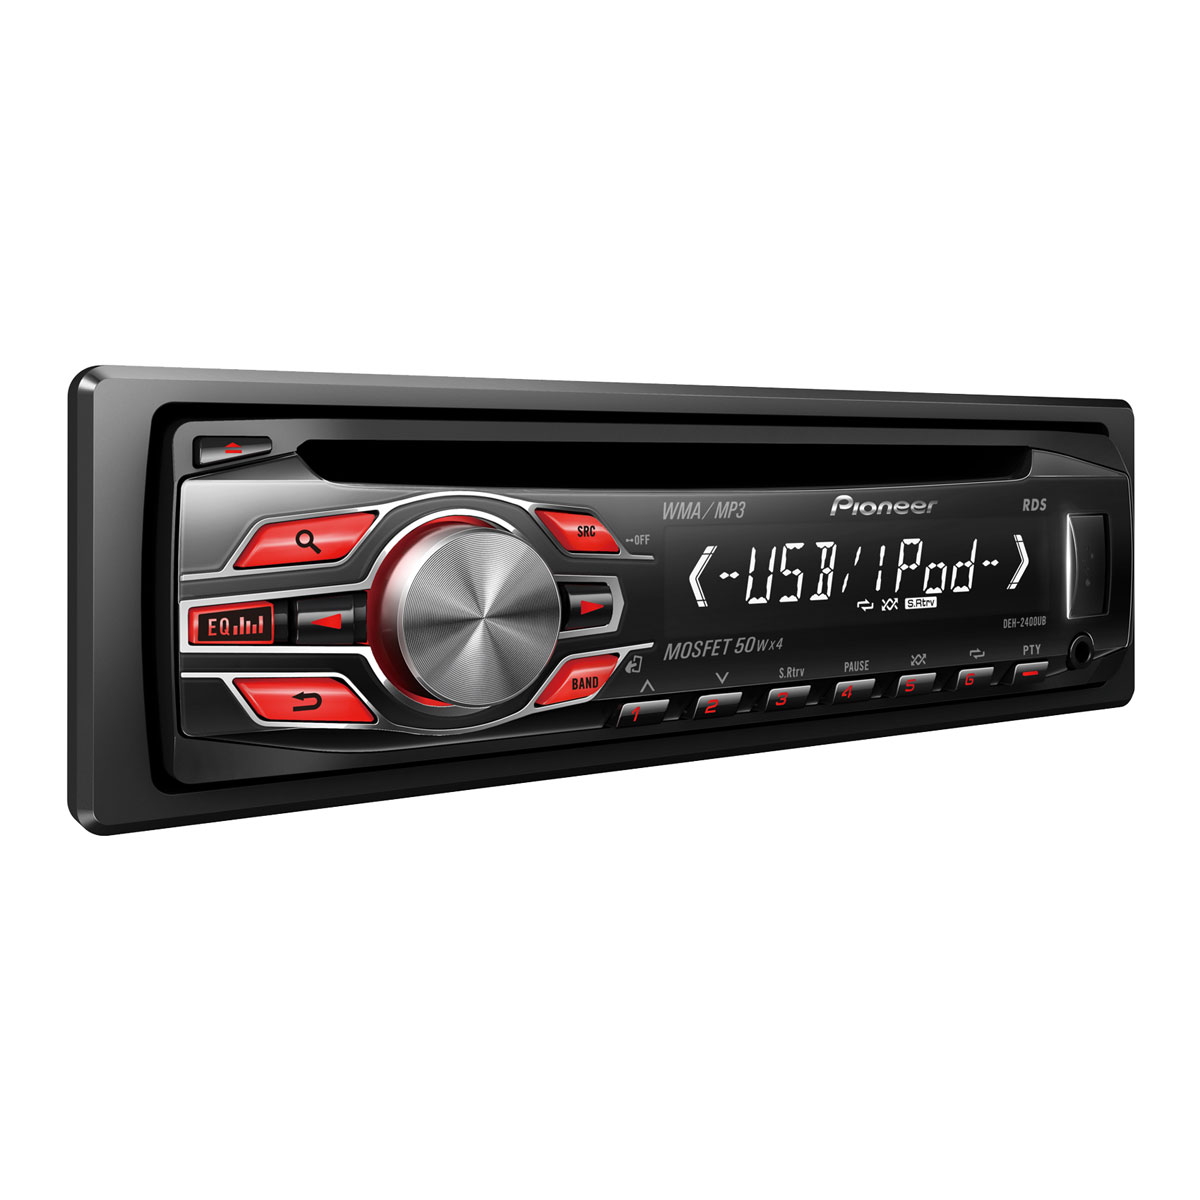 pioneer deh 2400ub autoradio pioneer sur. Black Bedroom Furniture Sets. Home Design Ideas